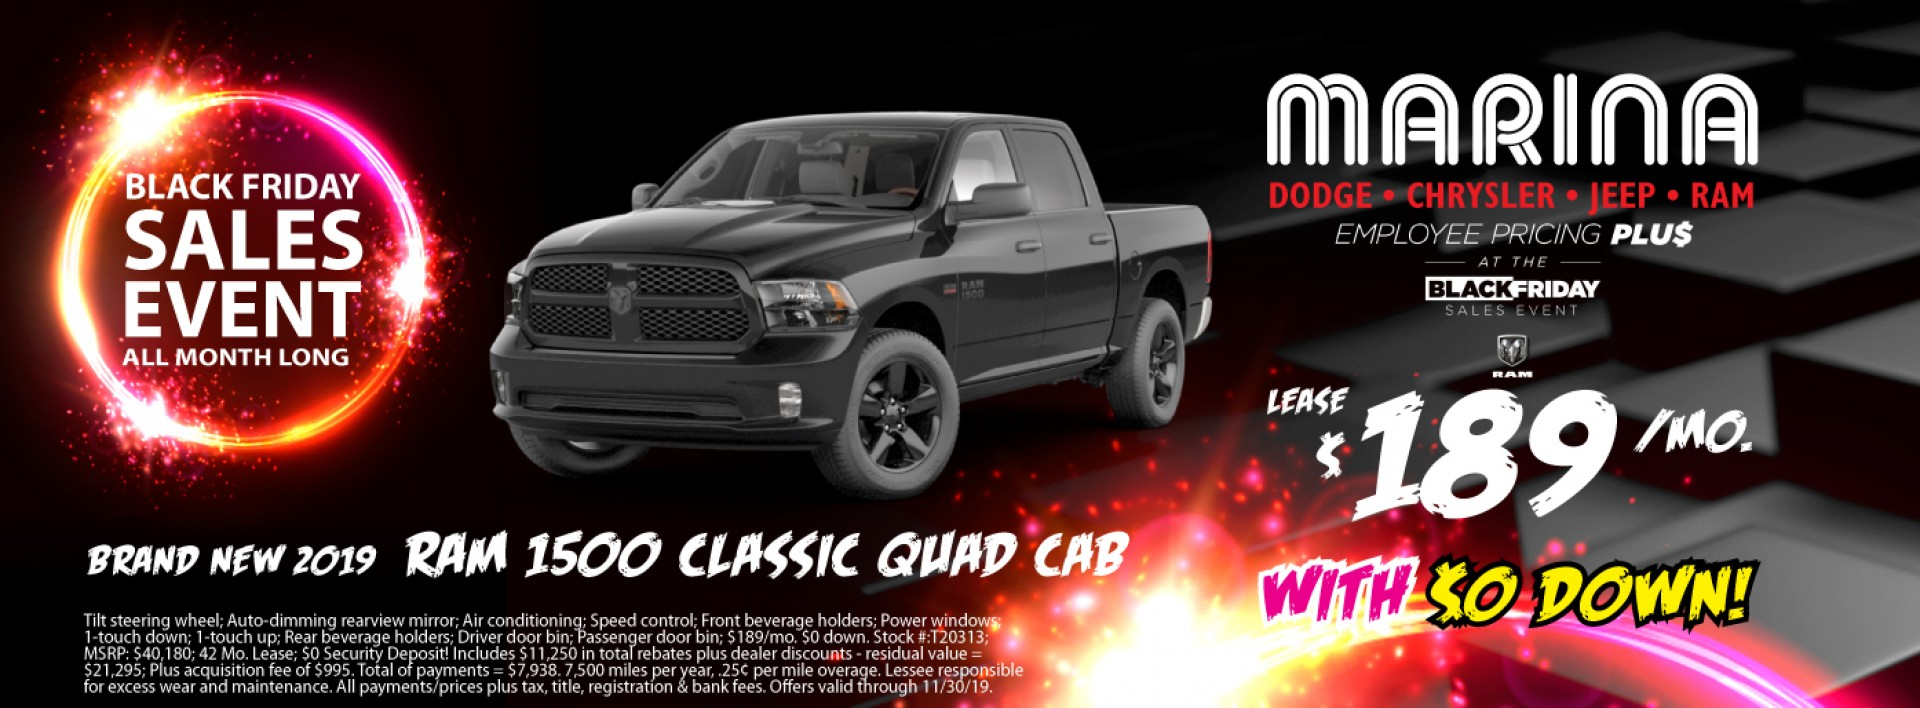 Brand new 2019 Ram 1500 Classic Quad Cab lease $189/mo. with $0 down!